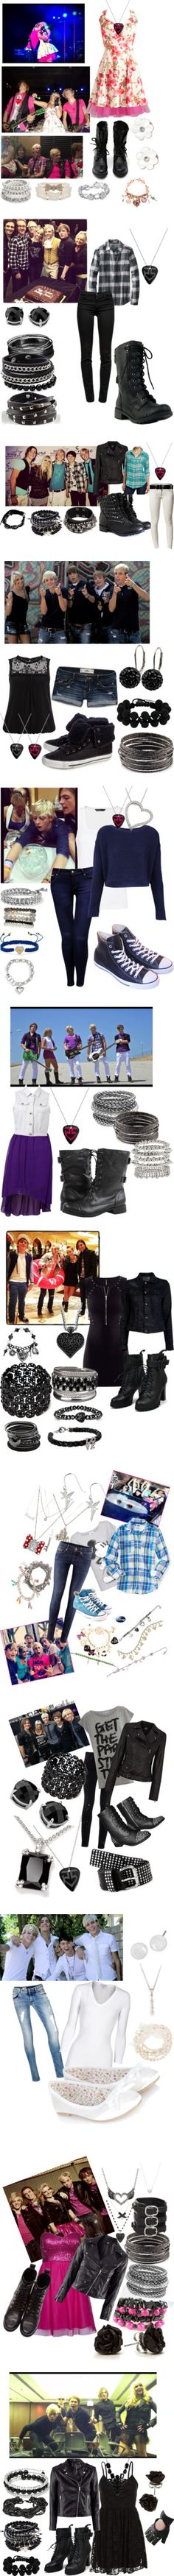 """""""If I Were in R5 and Rydel related Sets"""" by geena-arianna-volturi ❤ liked on Polyvore"""